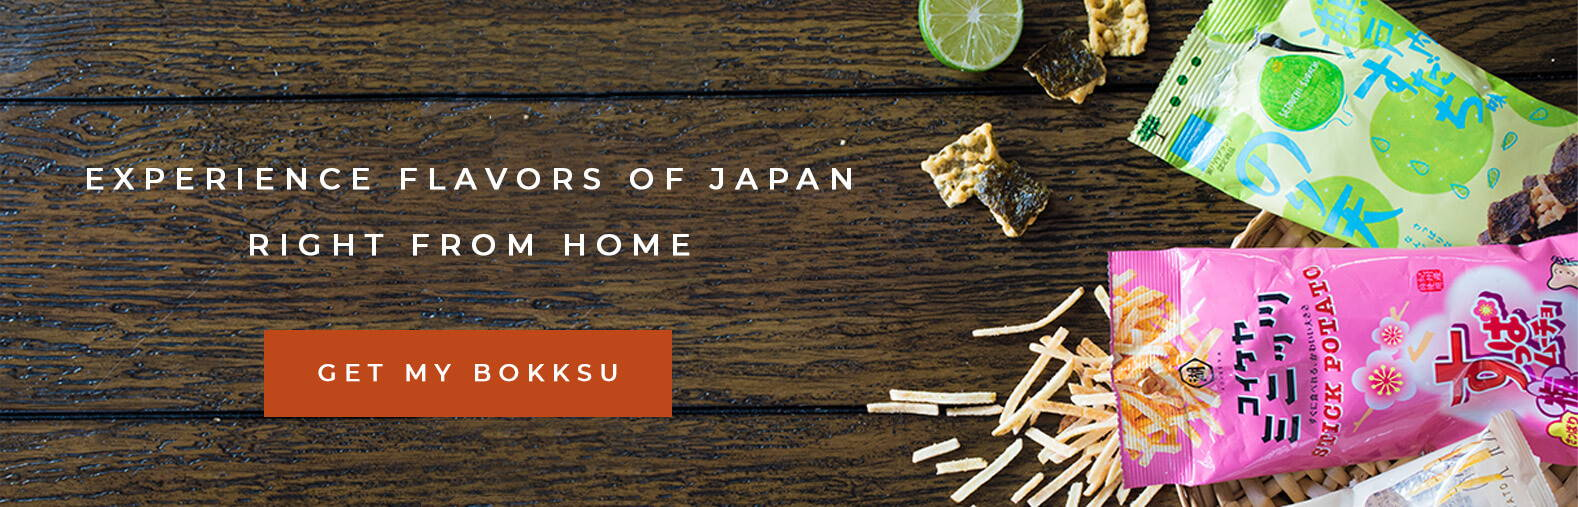 join Bokksu Japanese snack subscription box service today!